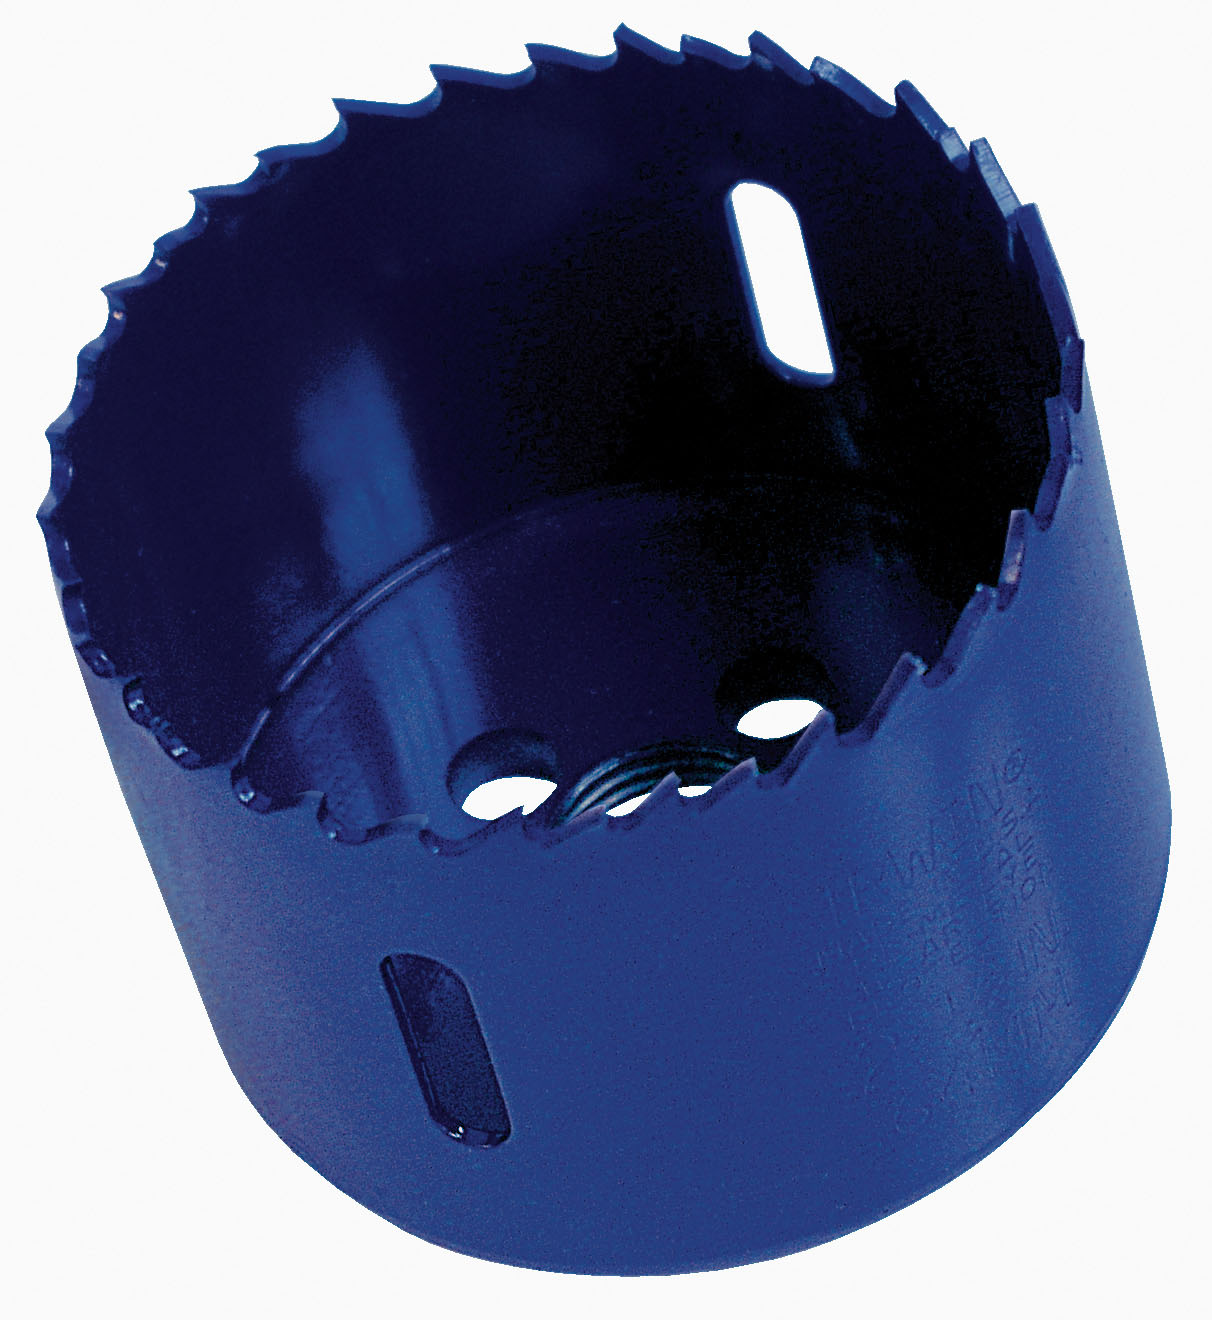 IRWIN 10504181 - Bi-Metal Holesaw 44mm – 1.3/4in